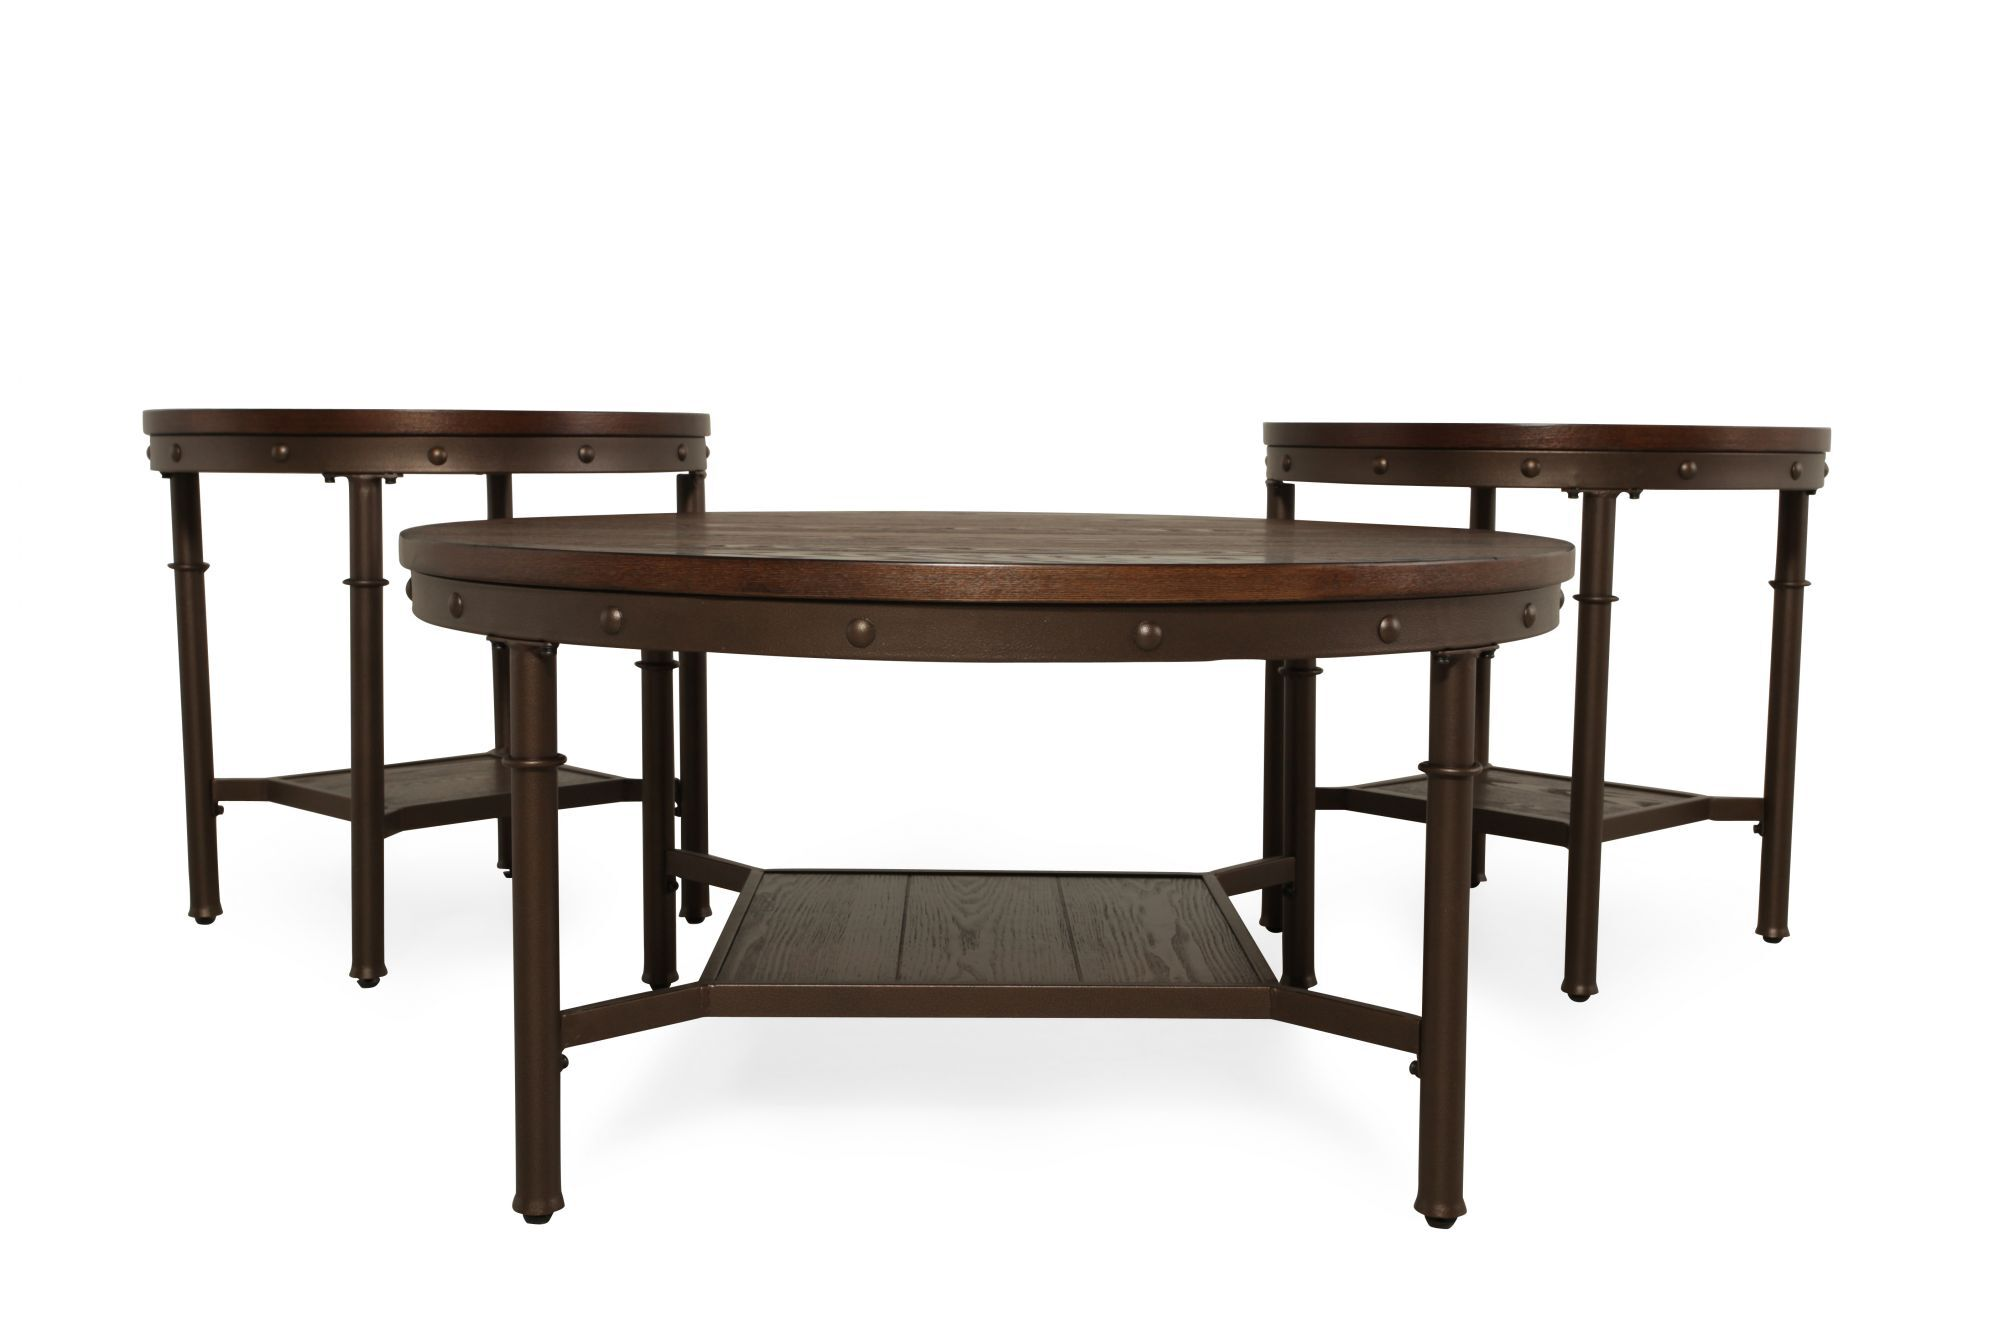 Images Three-Piece Rivet Accented Casual Coffee Table Set in Brown Three-Piece Rivet Accented Casual Coffee Table Set in Brown  sc 1 st  Mathis Brothers & Three-Piece Rivet Accented Casual Coffee Table Set in Brown | Mathis ...